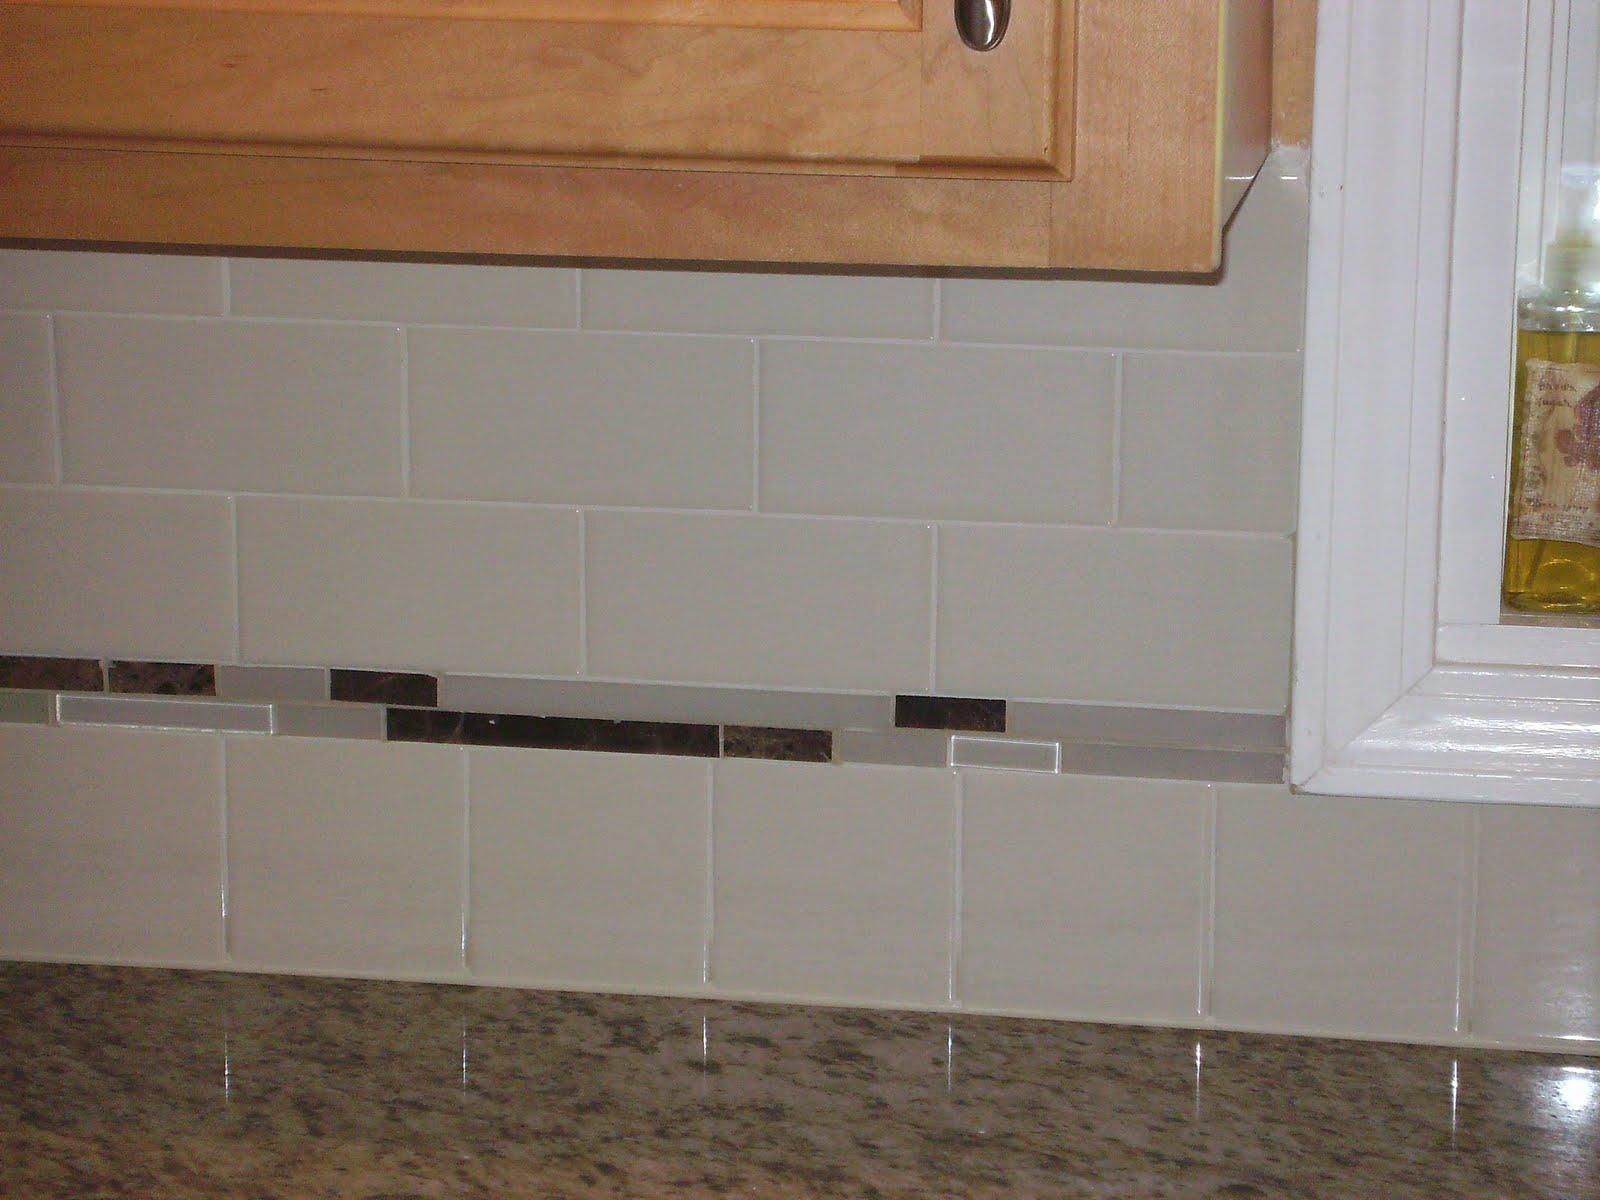 Image of: Kitchen Backsplash Subway Tile Designs Ideas